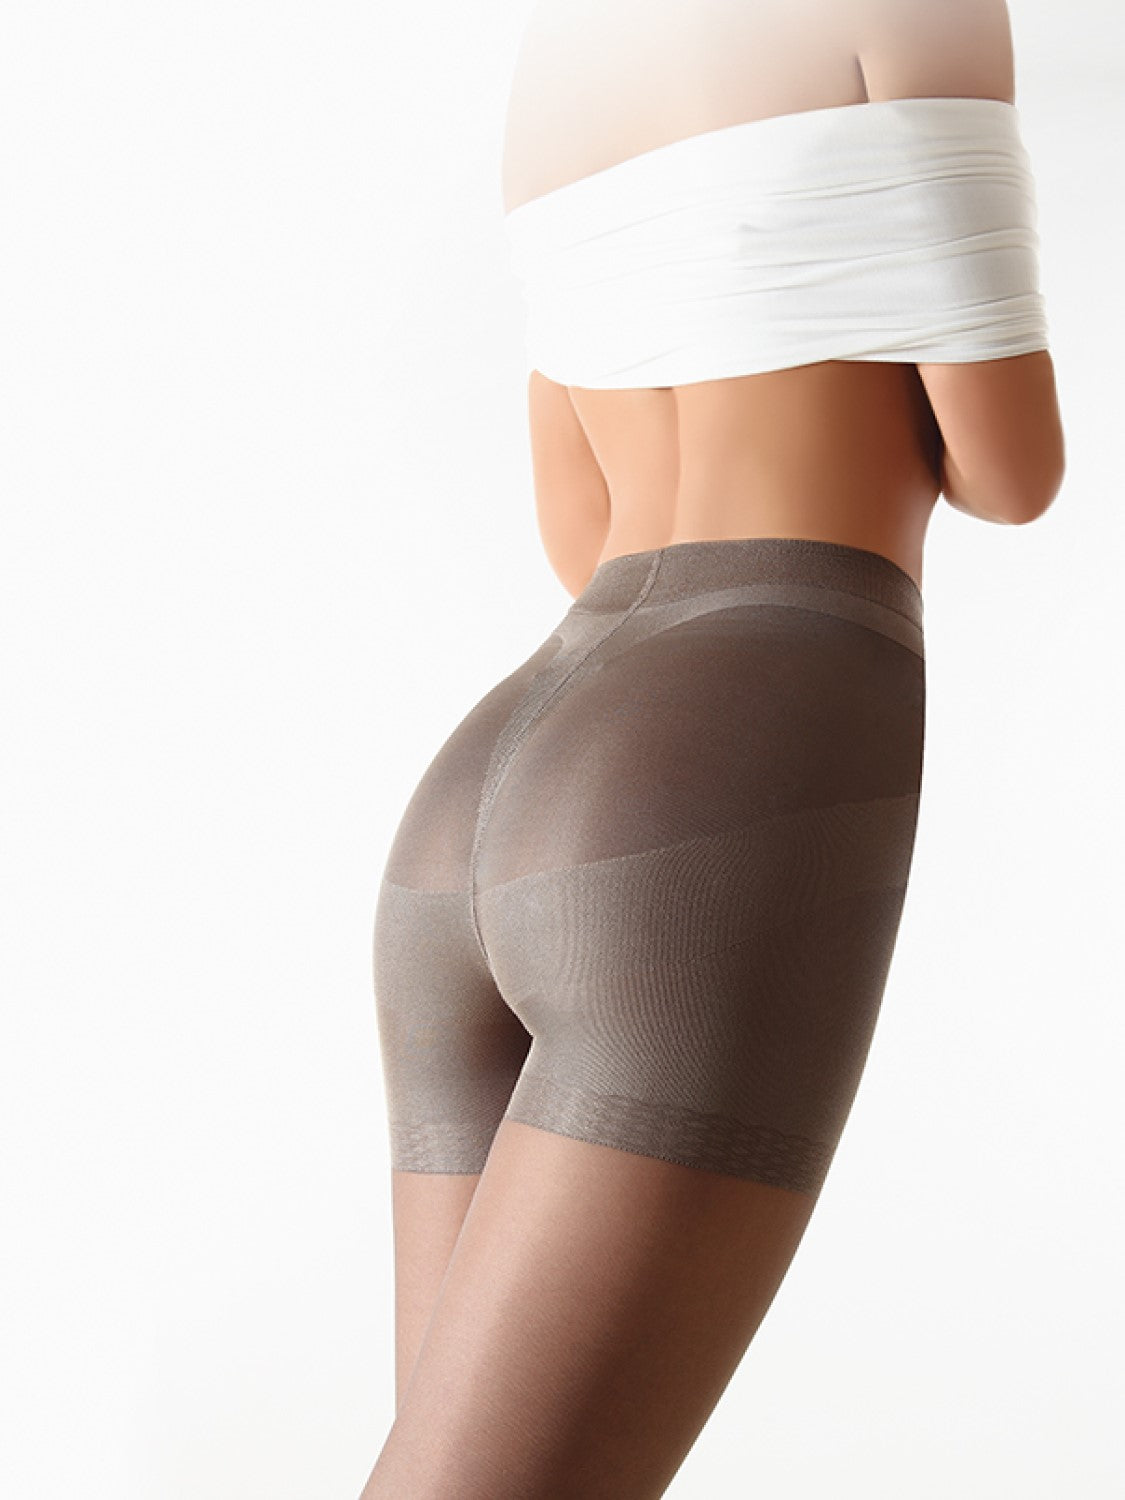 the sleek body shaping tights